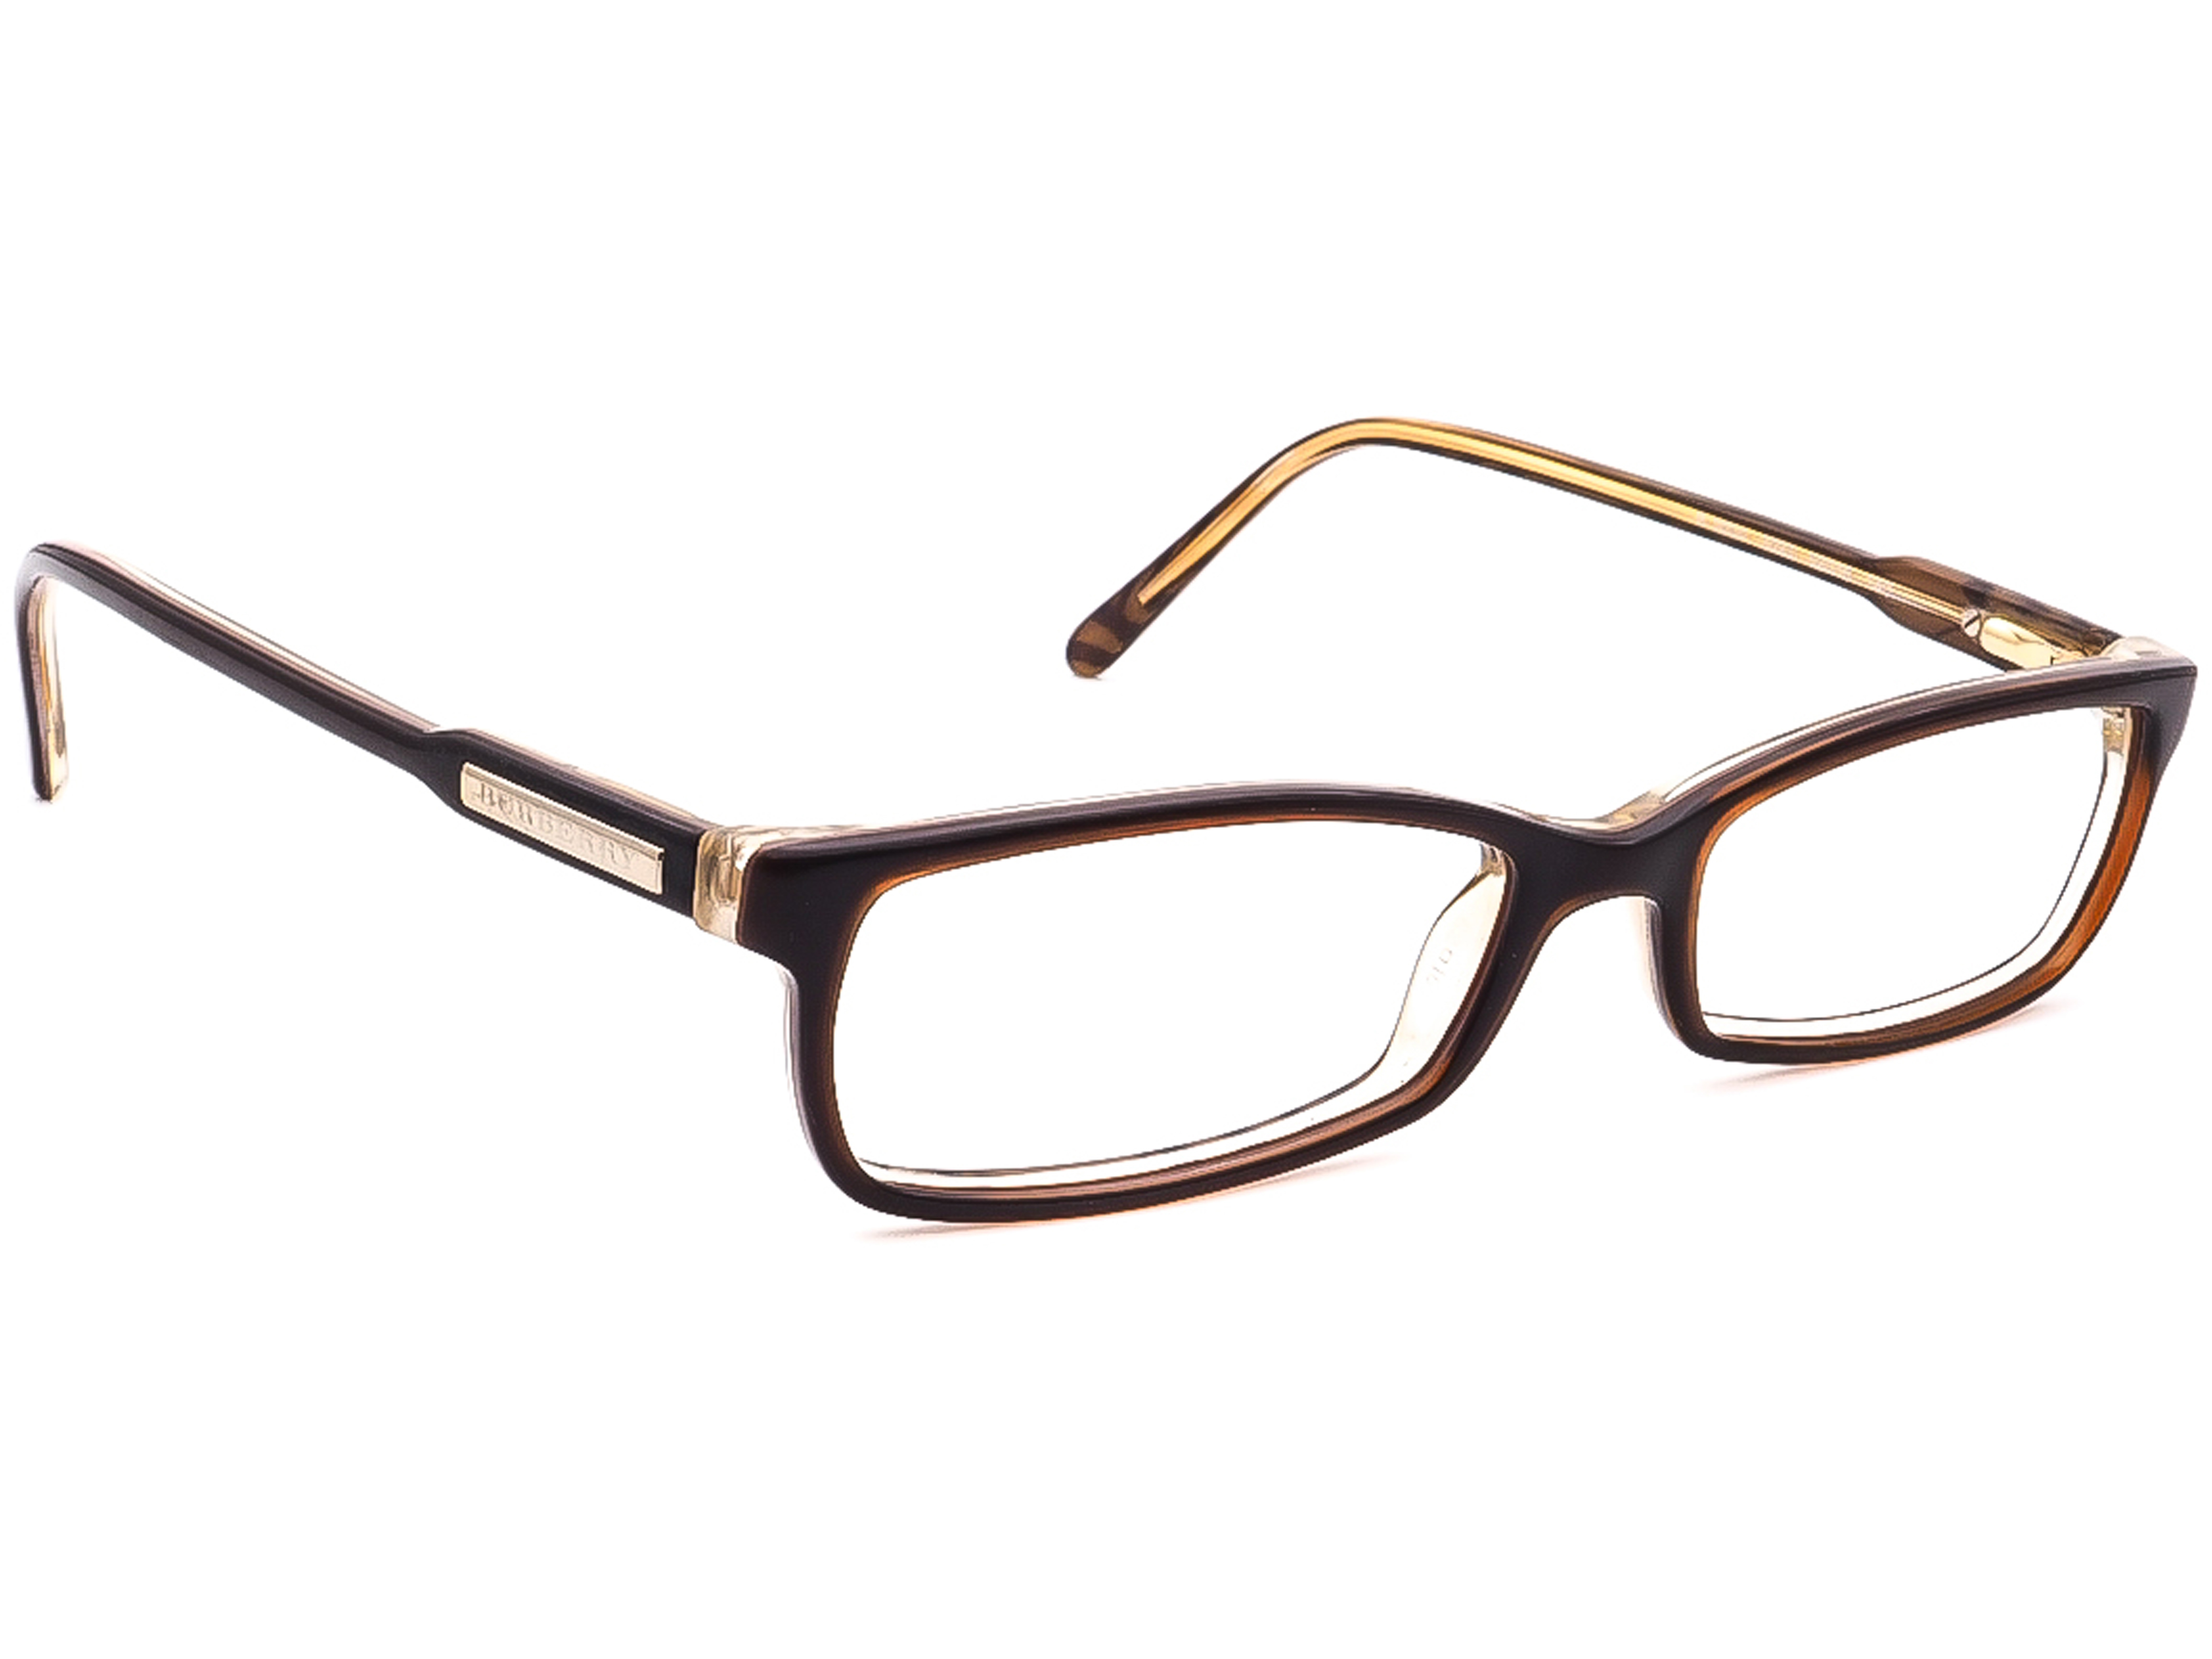 Burberry B 2004 3023 Eyeglasses